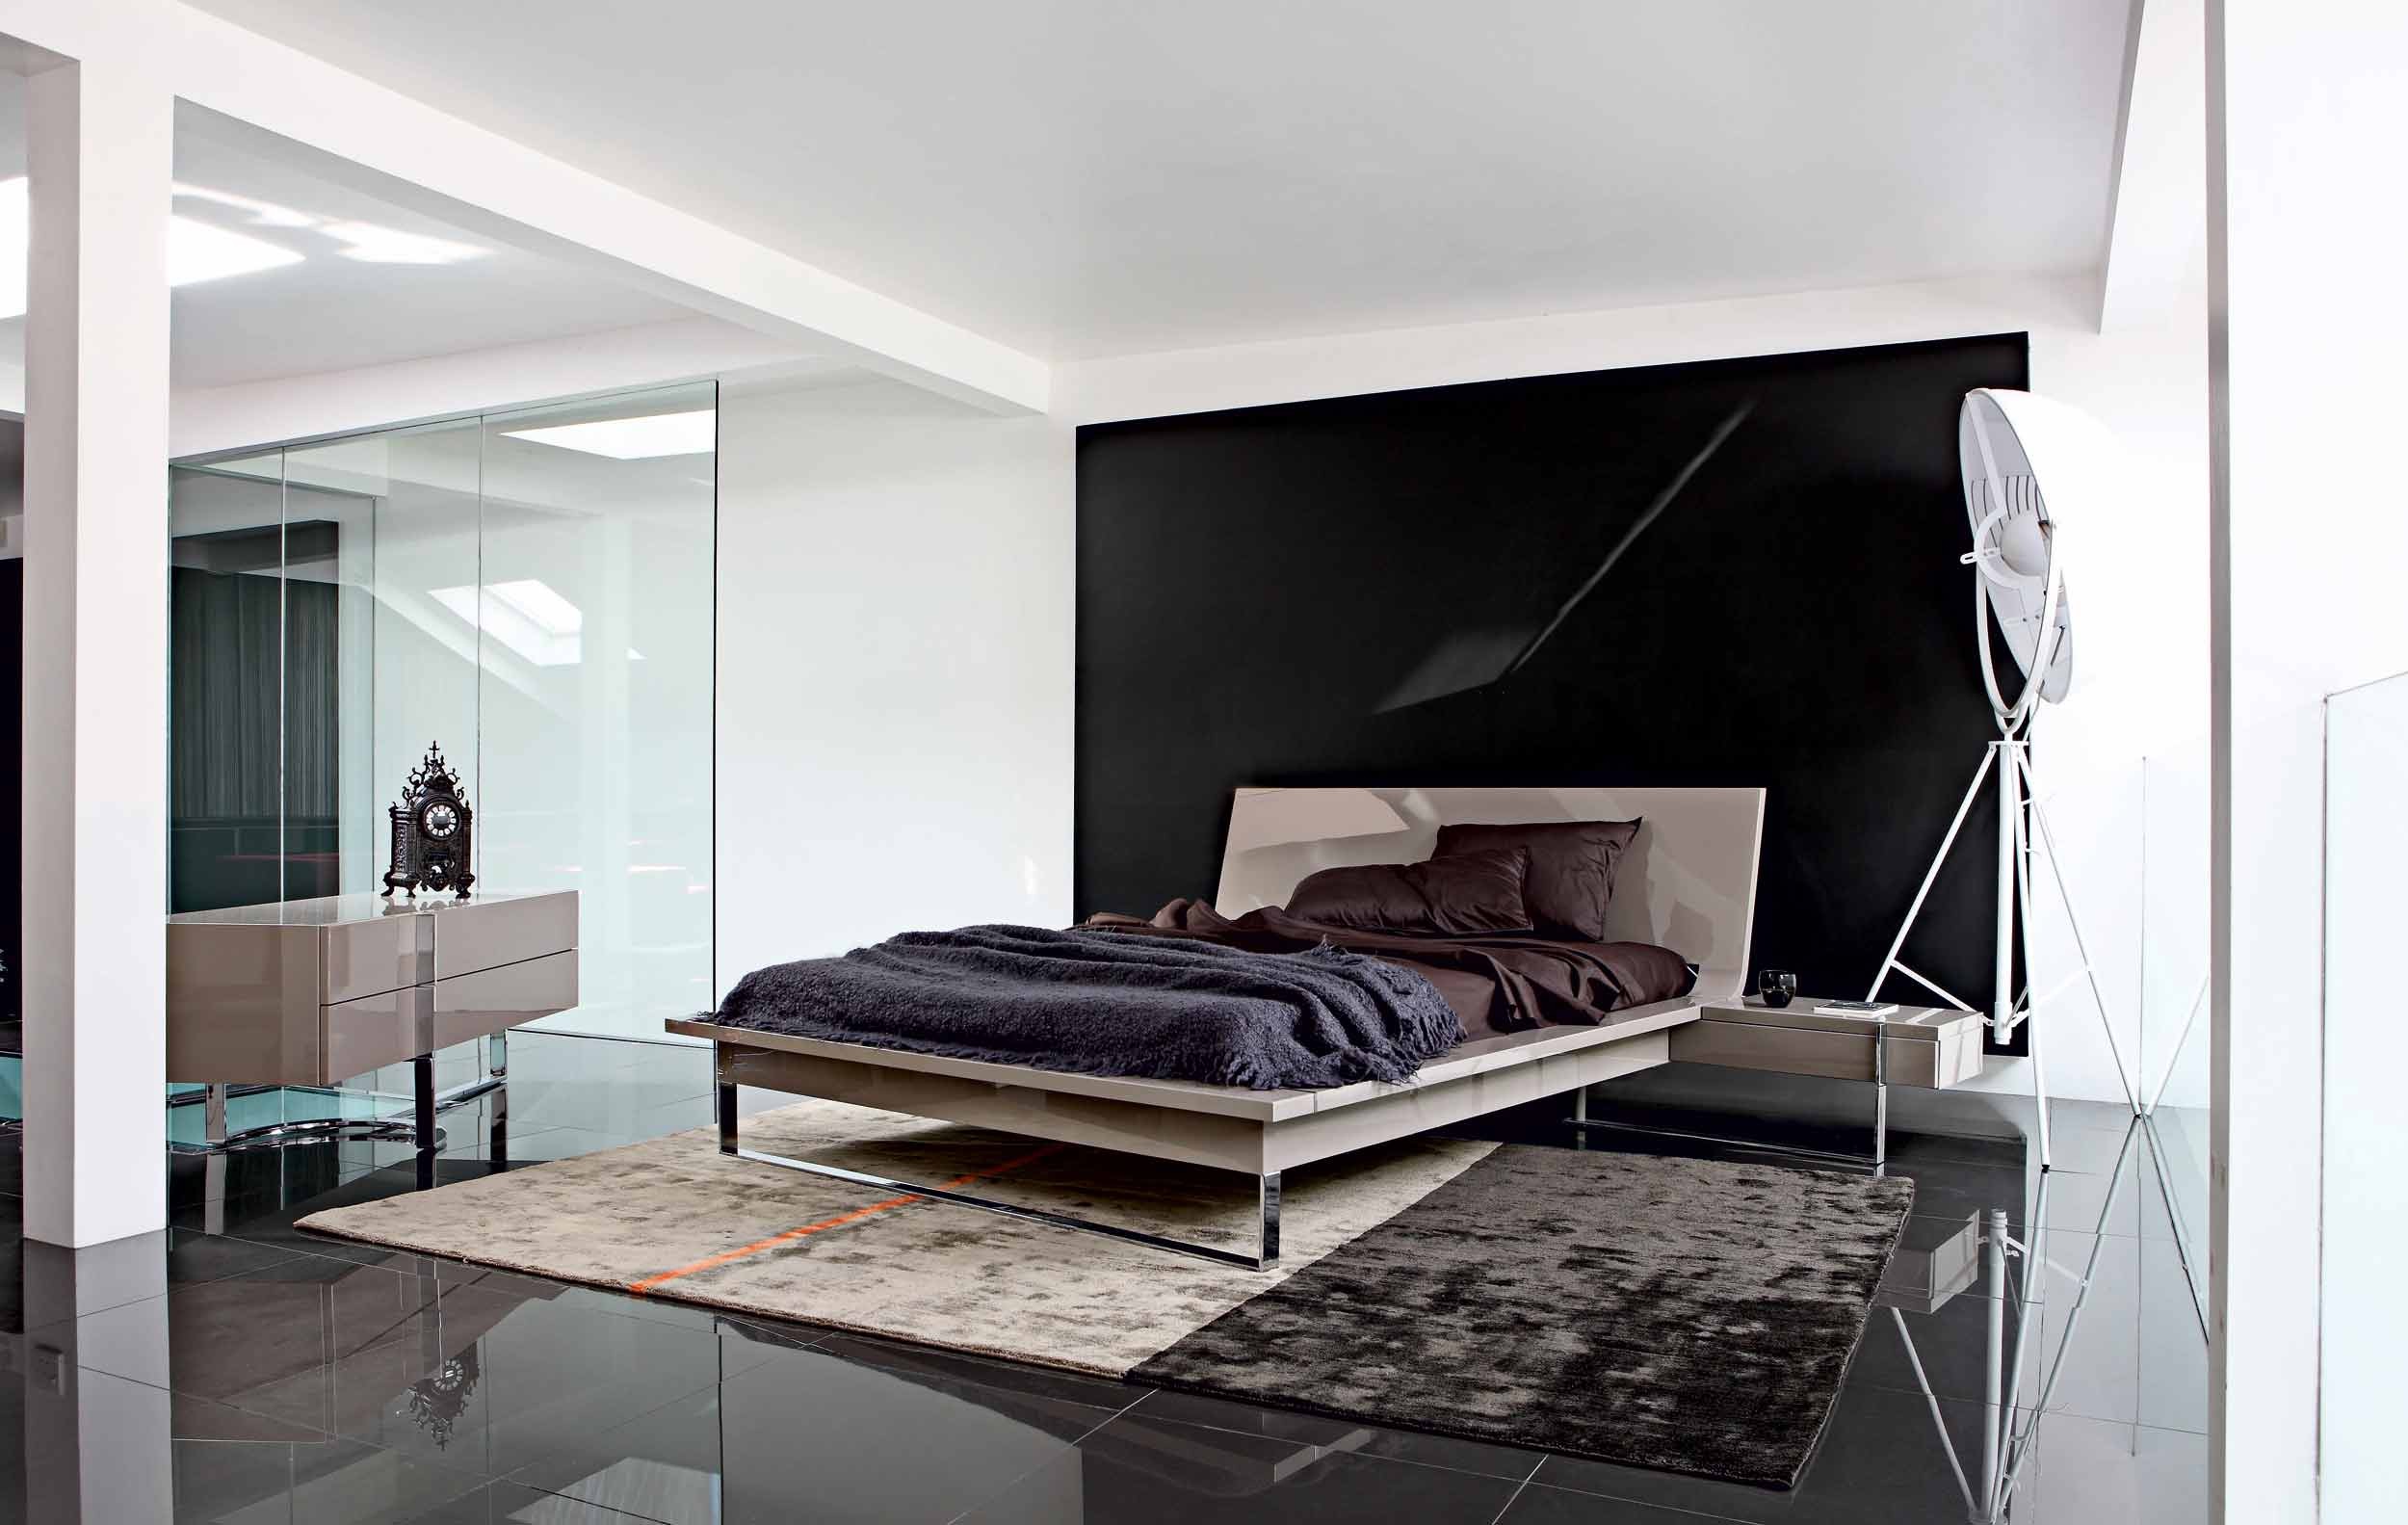 Minimalist bedroom interior design ideas for Bedroom ideas minimalist